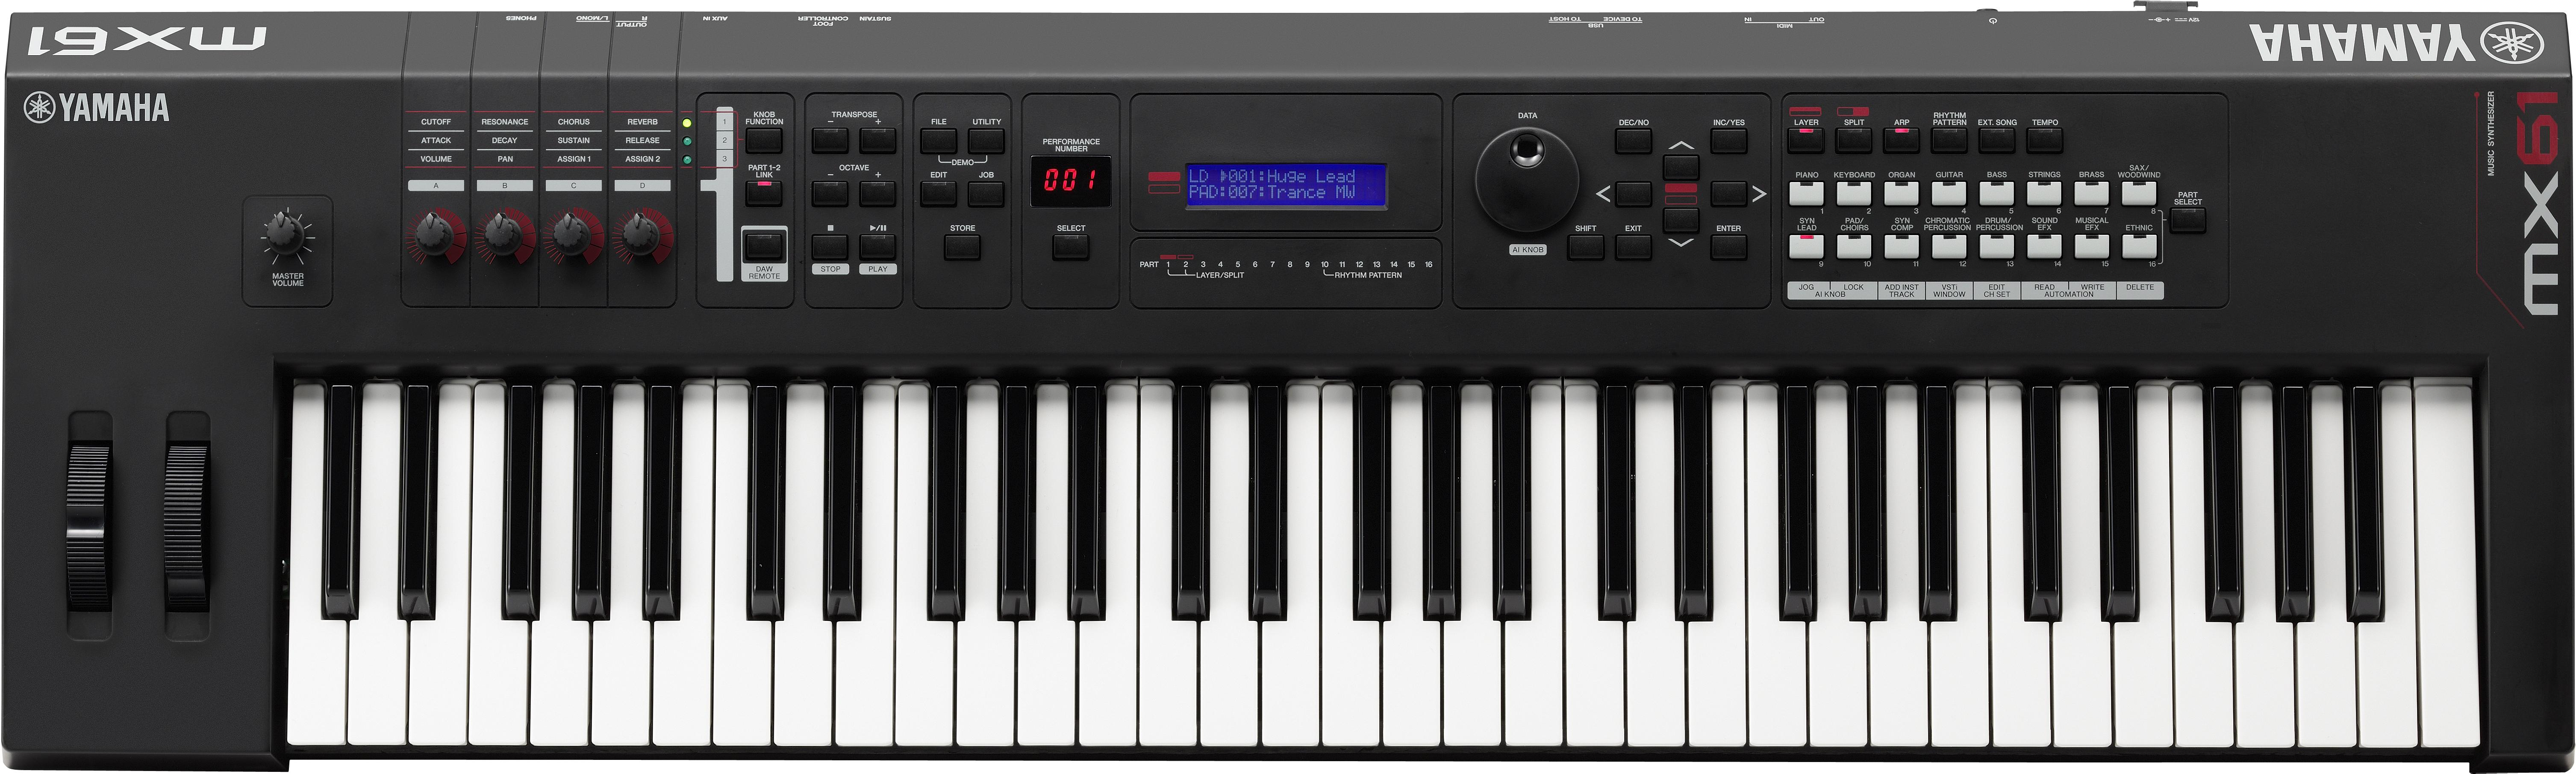 Yamaha Mx  Key Music Production Synthesizer Keyboard